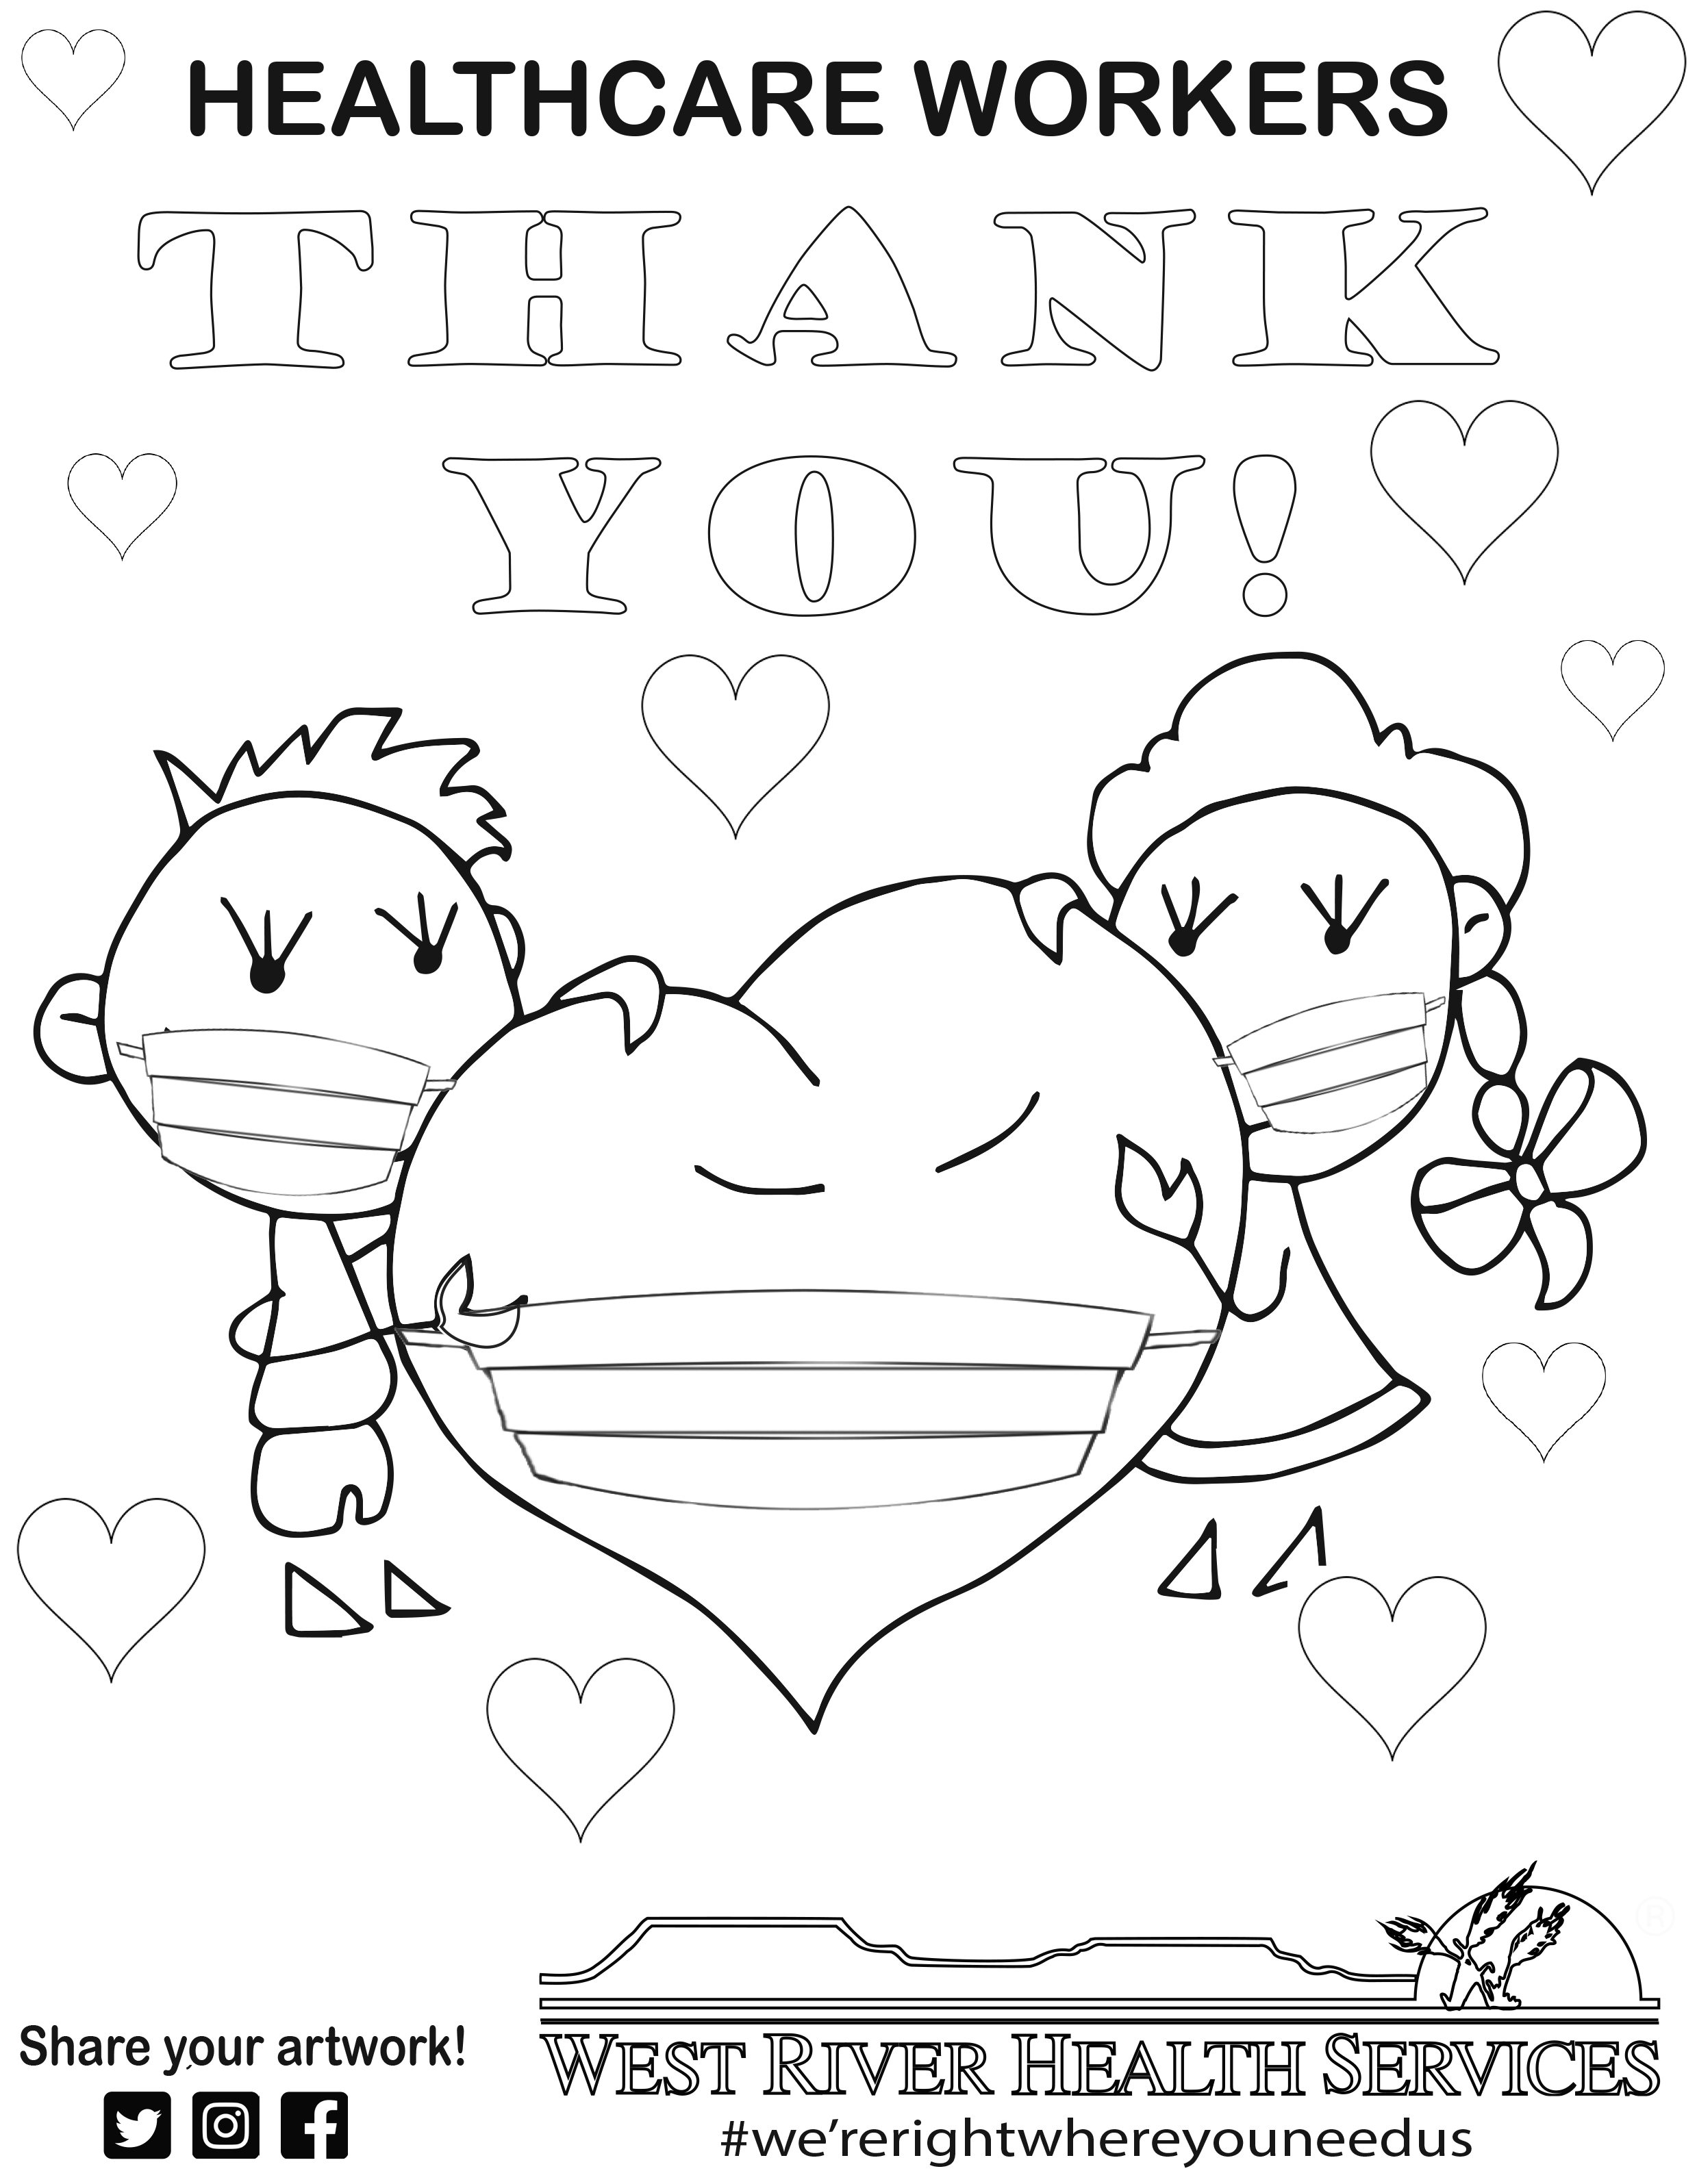 04 20 2020 Healthcare Workers Thank You